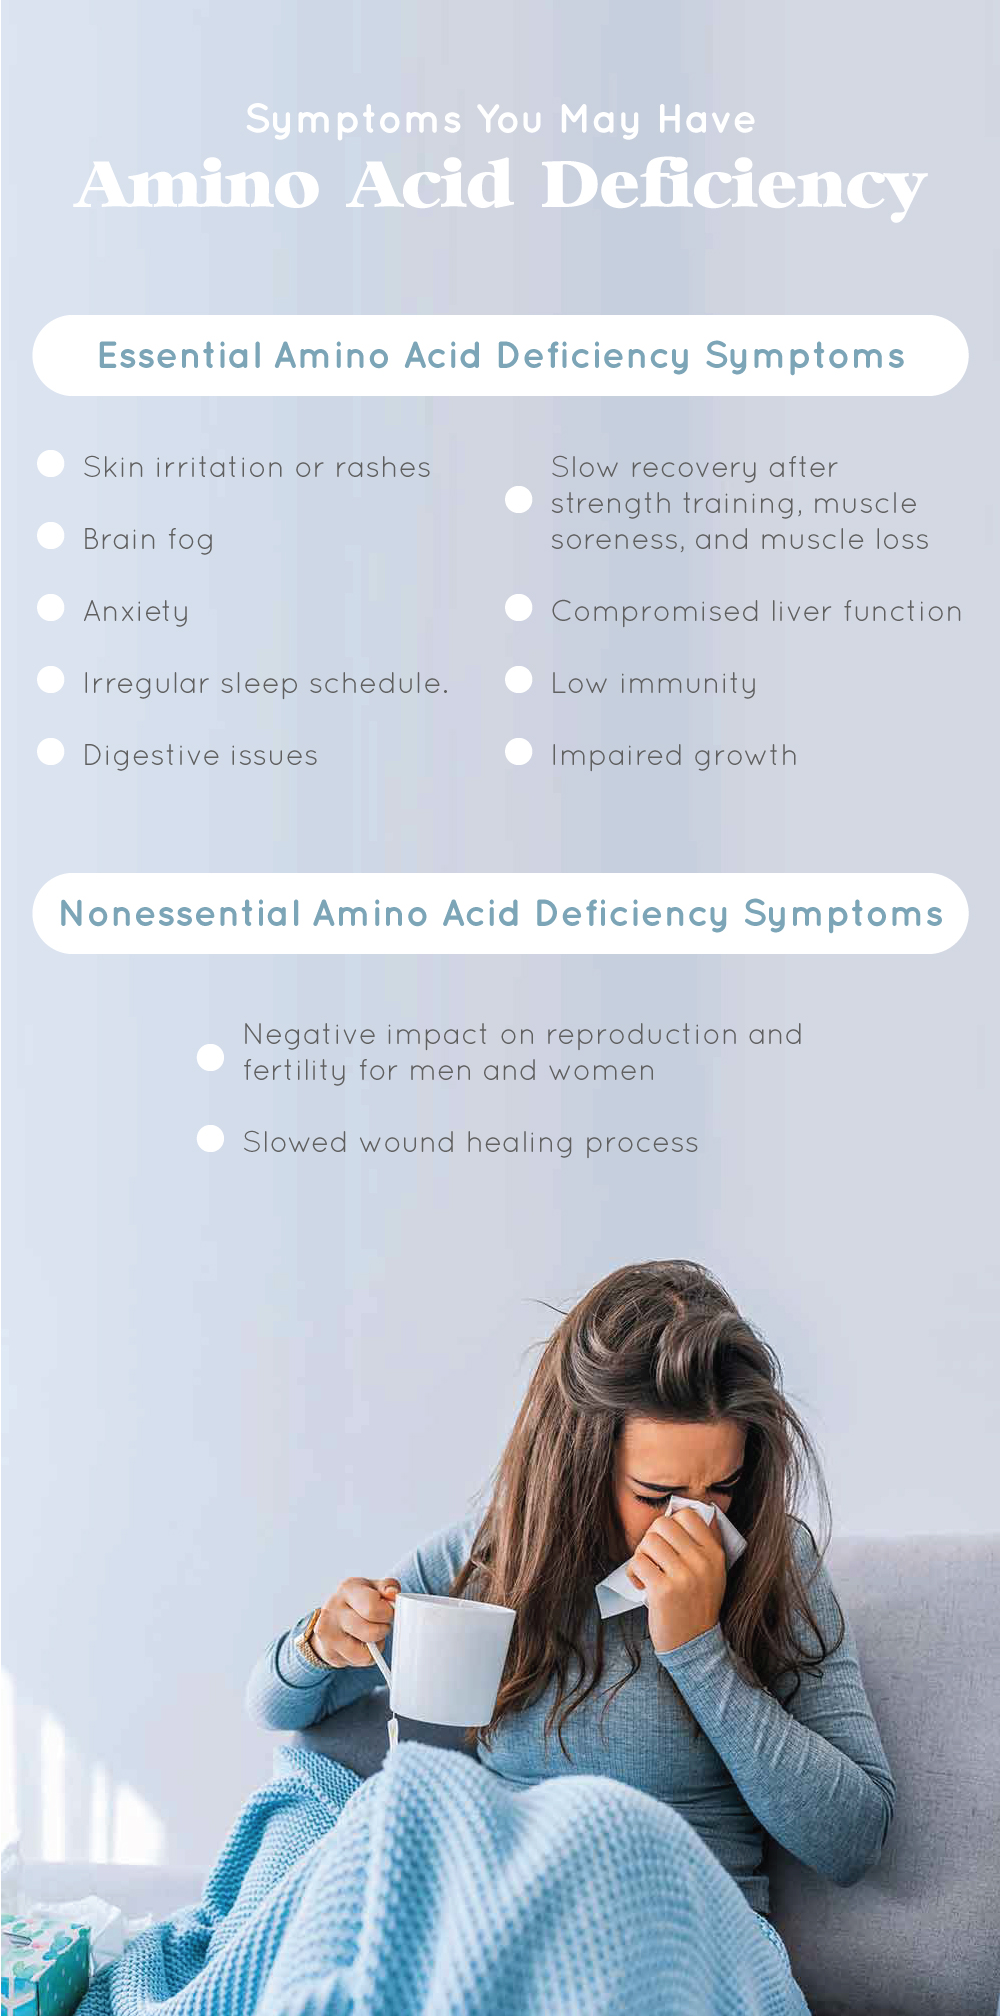 Symptoms You May Have Amino Acid Deficiency